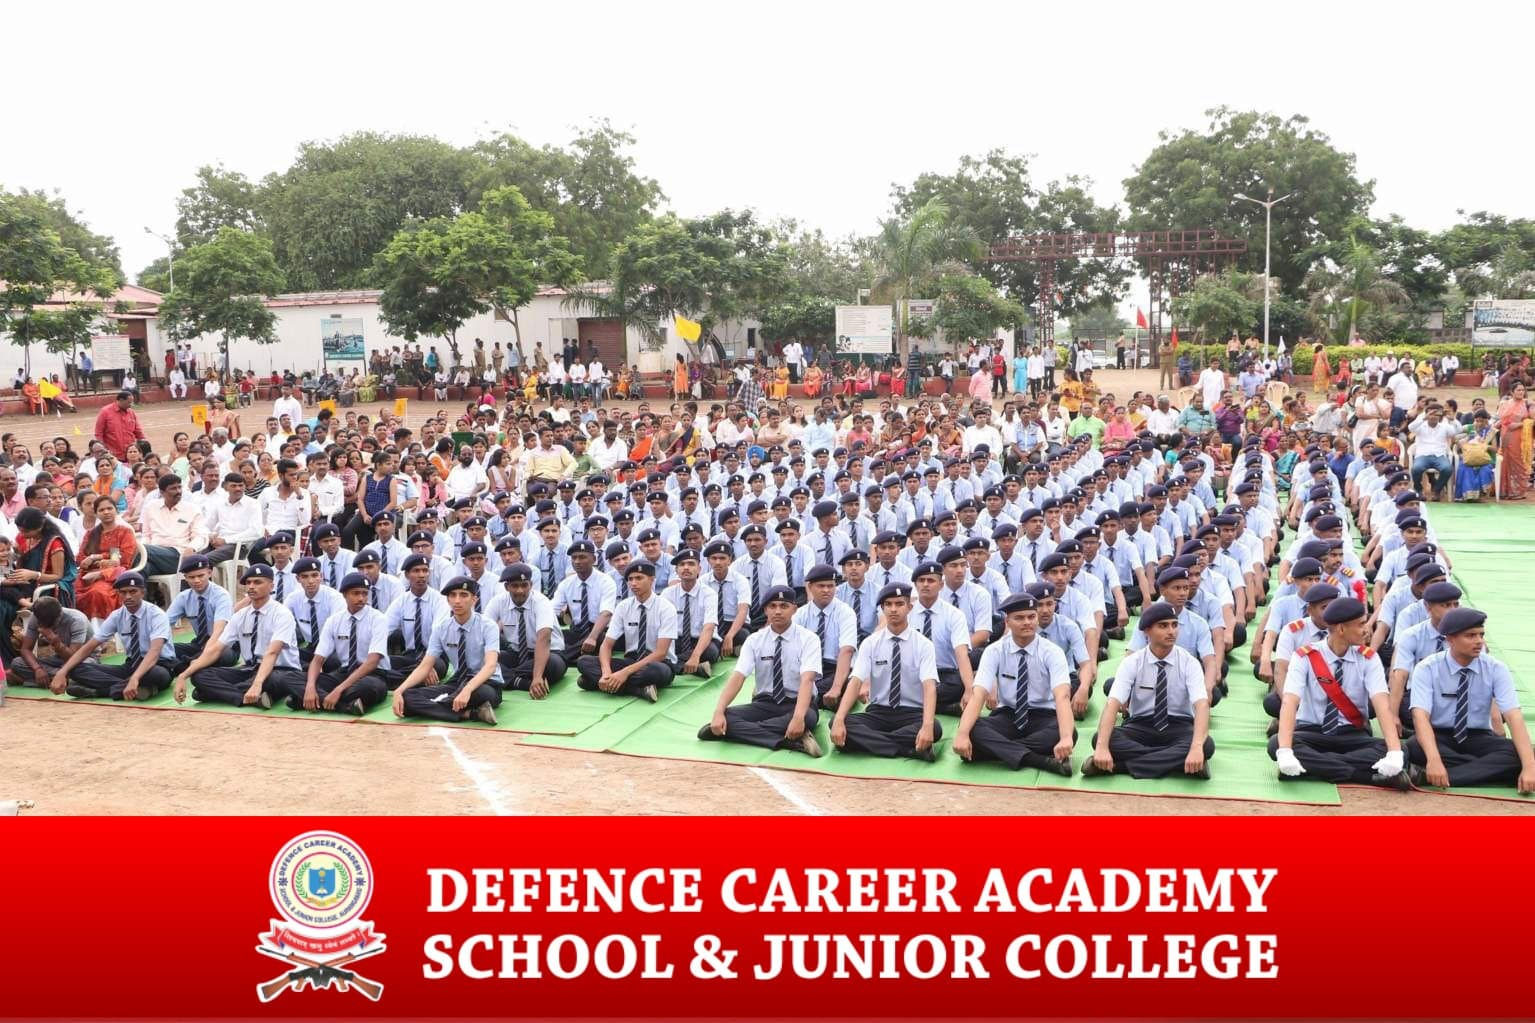 defence-career-academy-in-maharashtra-military-school-admission-2020-21